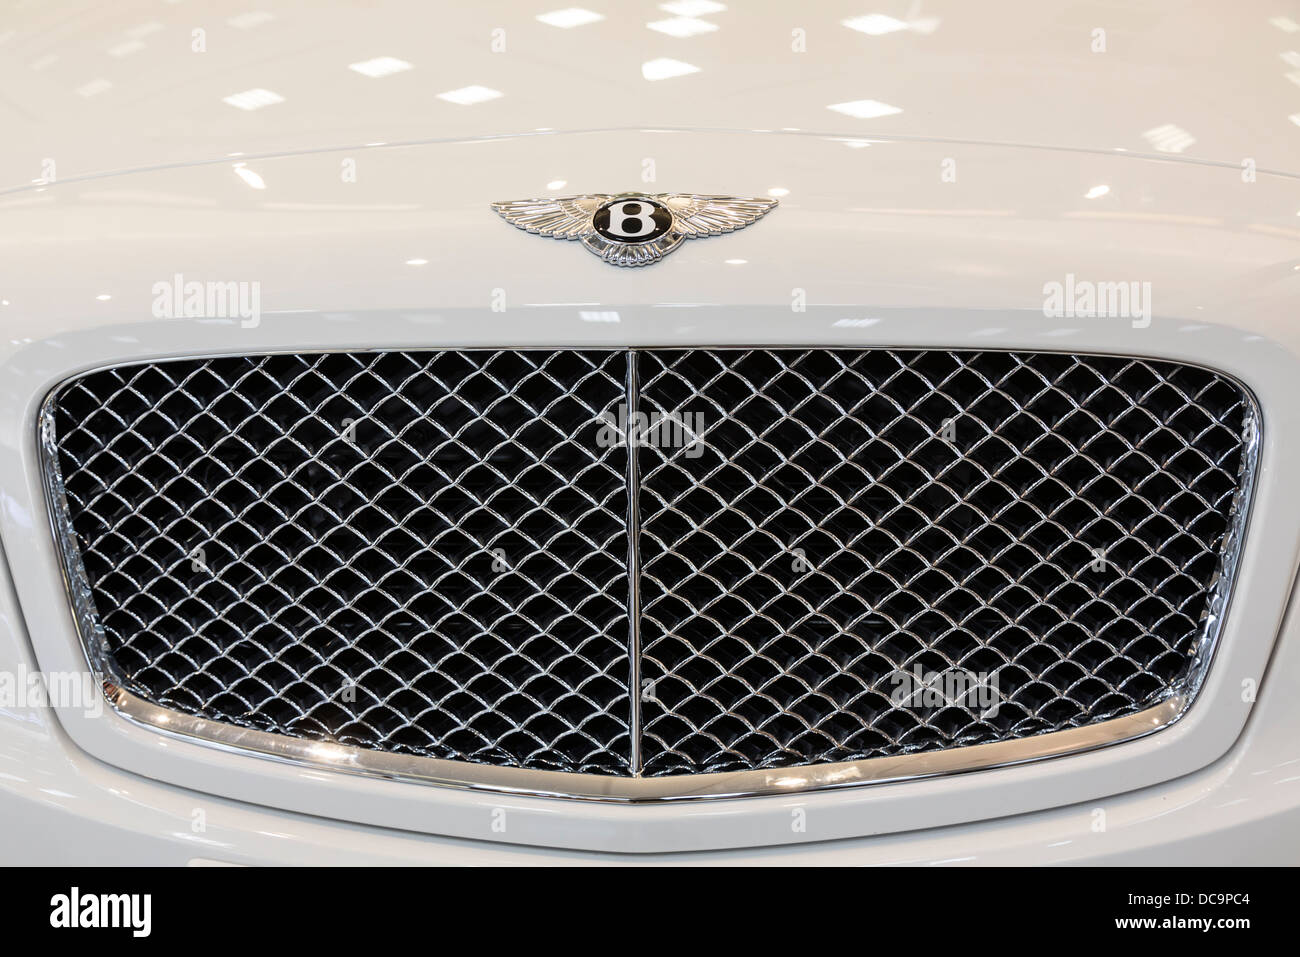 detail of Bentley Flying Spur car, Duty Free area, Doha, Qatar - Stock Image